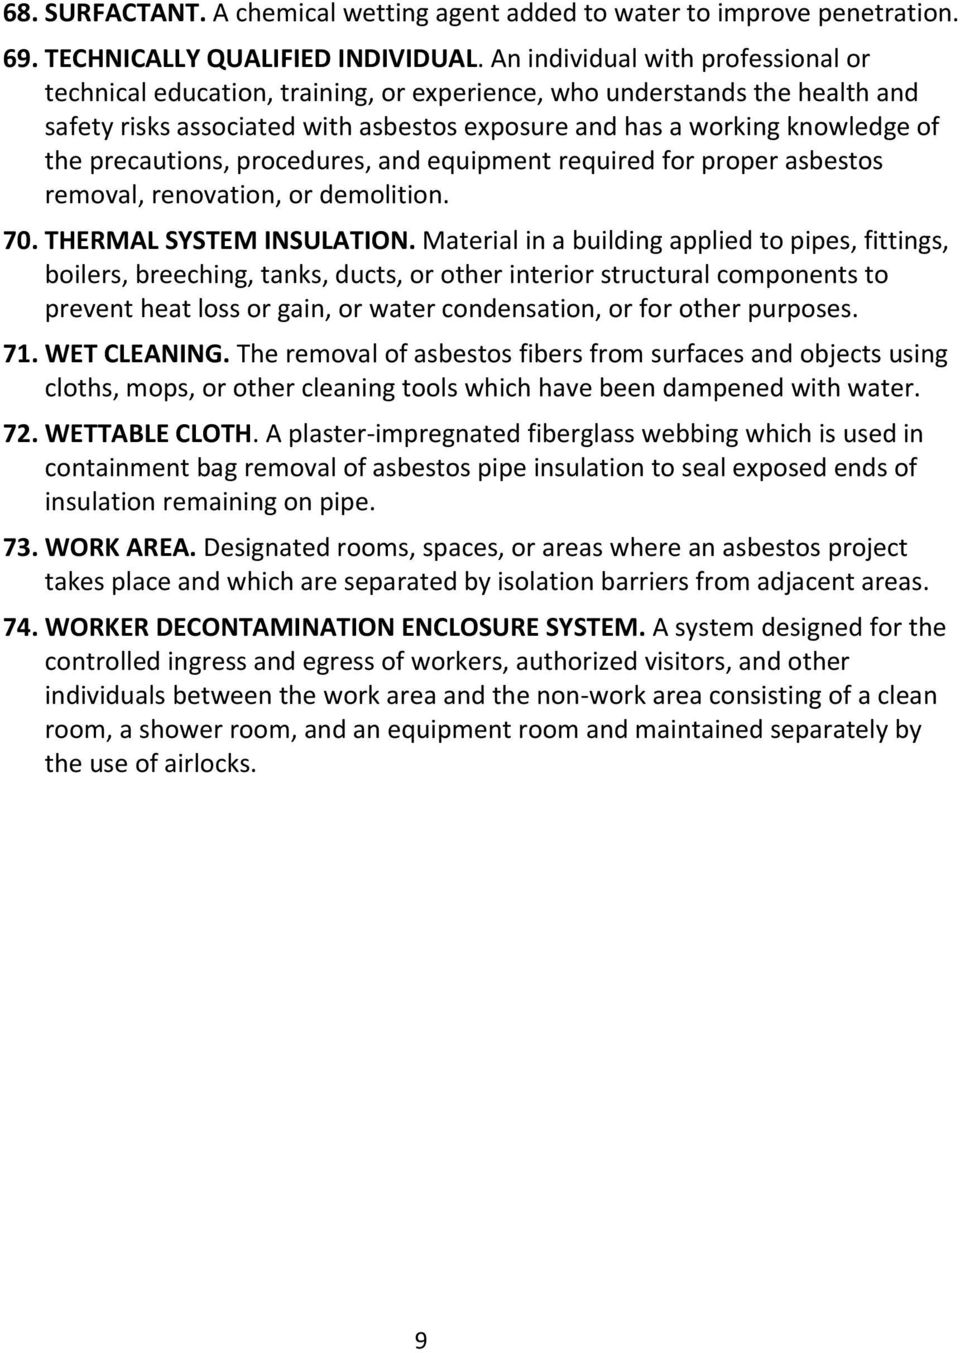 precautions, procedures, and equipment required for proper asbestos removal, renovation, or demolition. 70. THERMAL SYSTEM INSULATION.